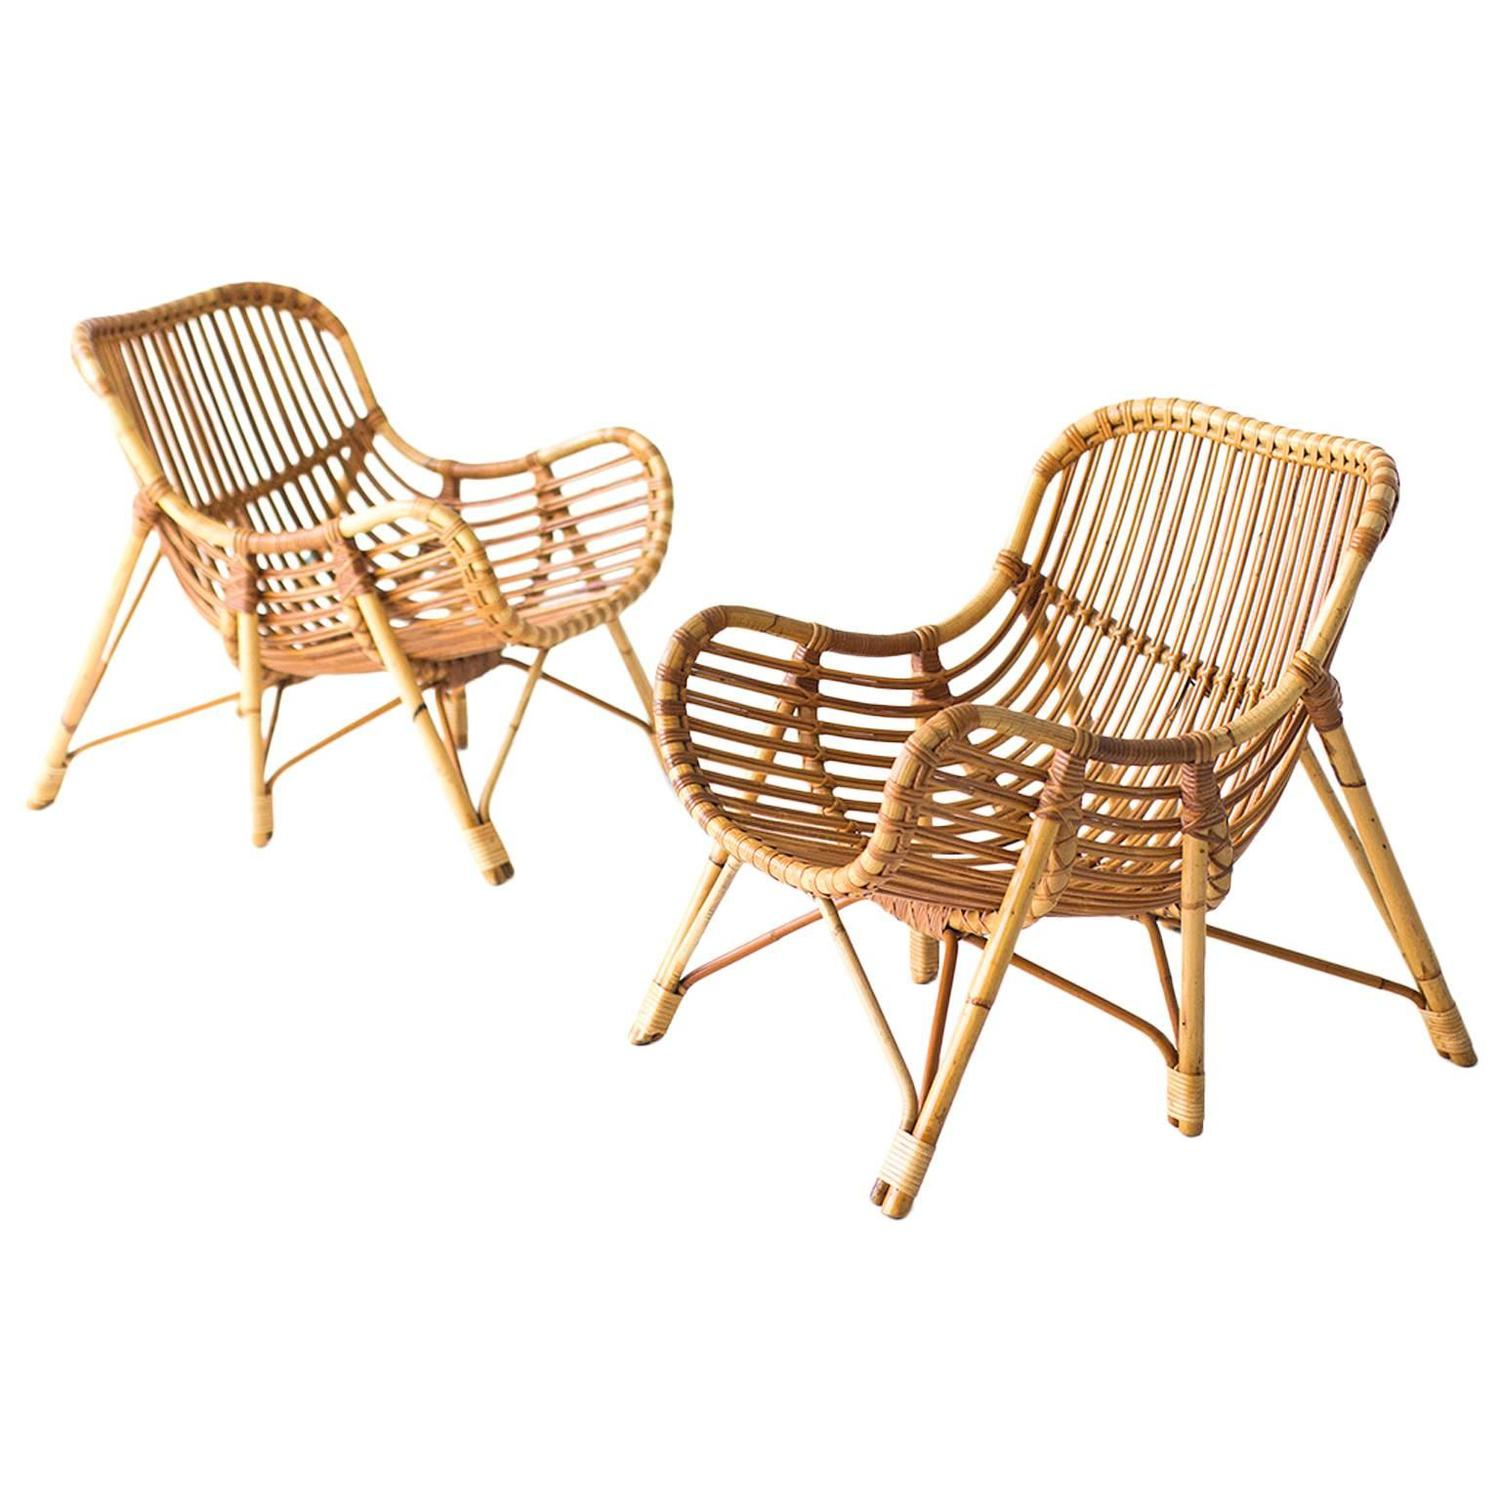 Danish Bamboo And Wicker Lounge Chairs By Laurids Lonborg For Sale At  1stdibs